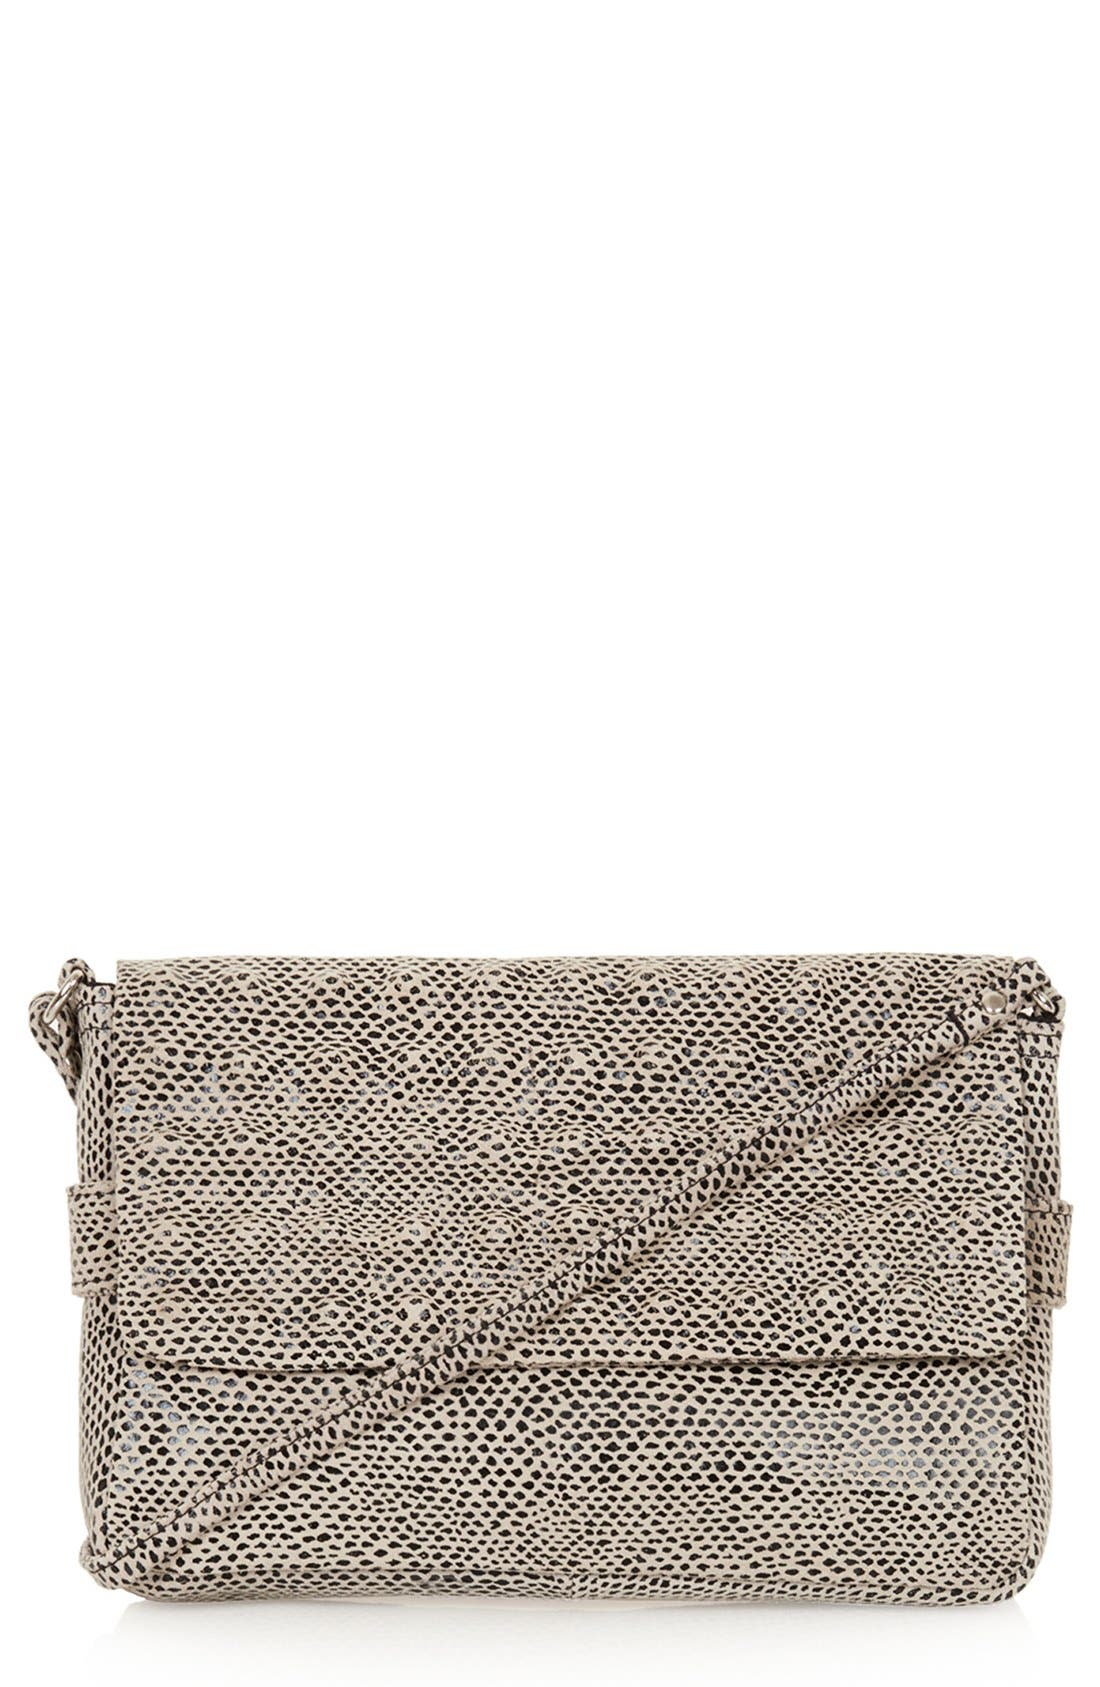 Alternate Image 1 Selected - Topshop Snake Embossed Crossbody Bag